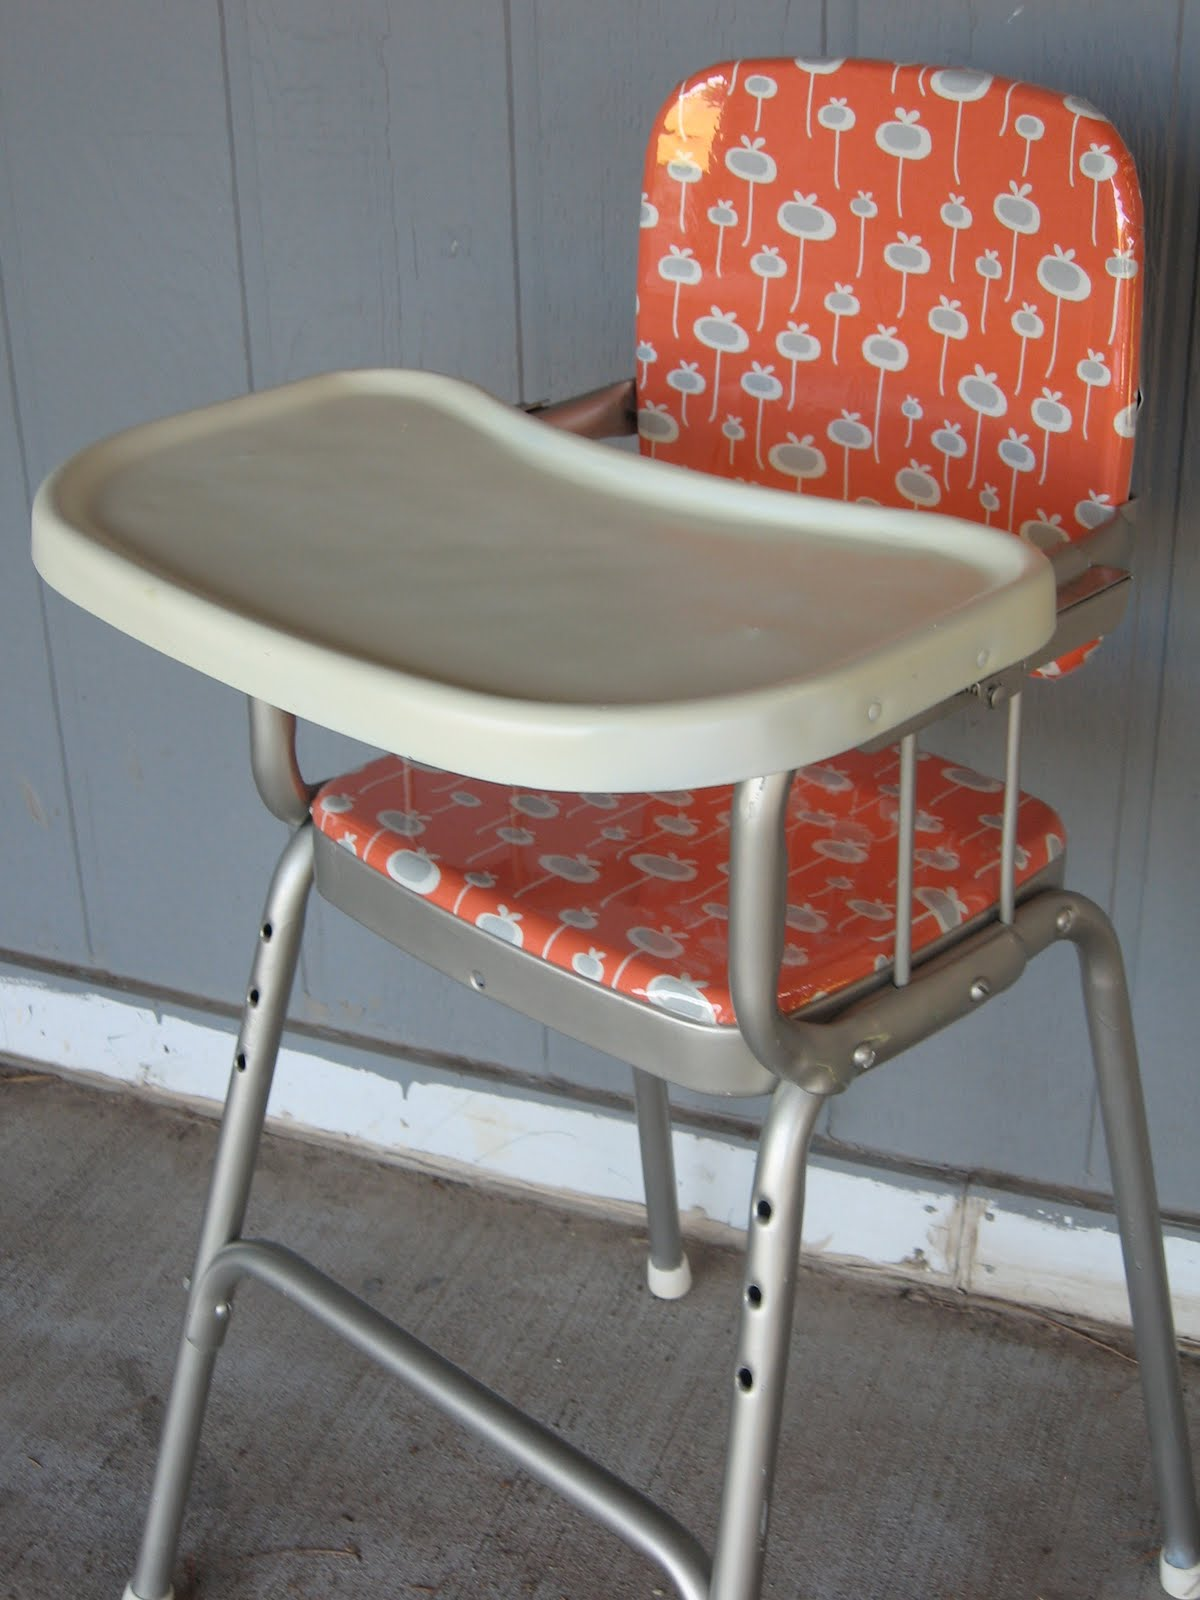 Antique High Chairs Chair Tray Frozen Knickers After Vintage Cosco